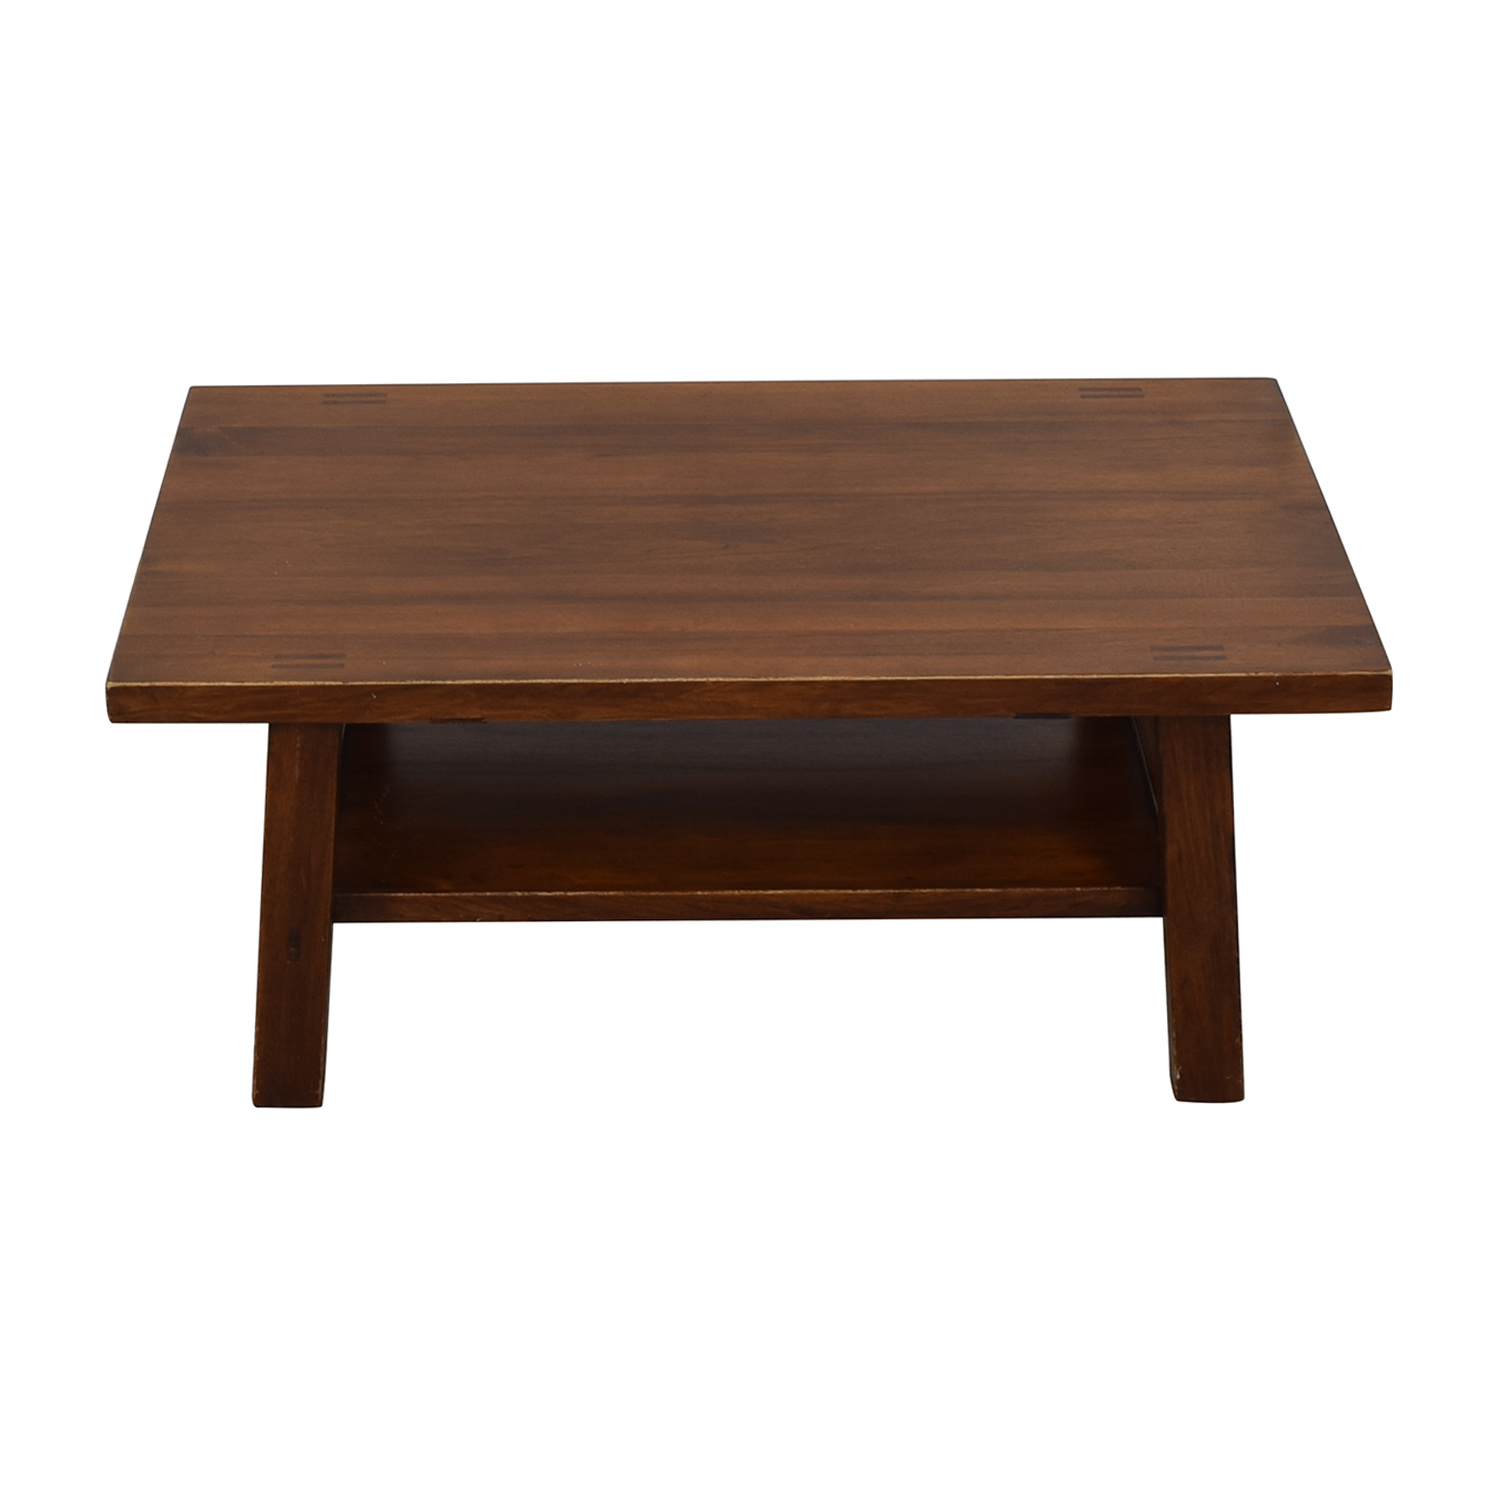 Two Tiered Rectangular Coffee Table brown